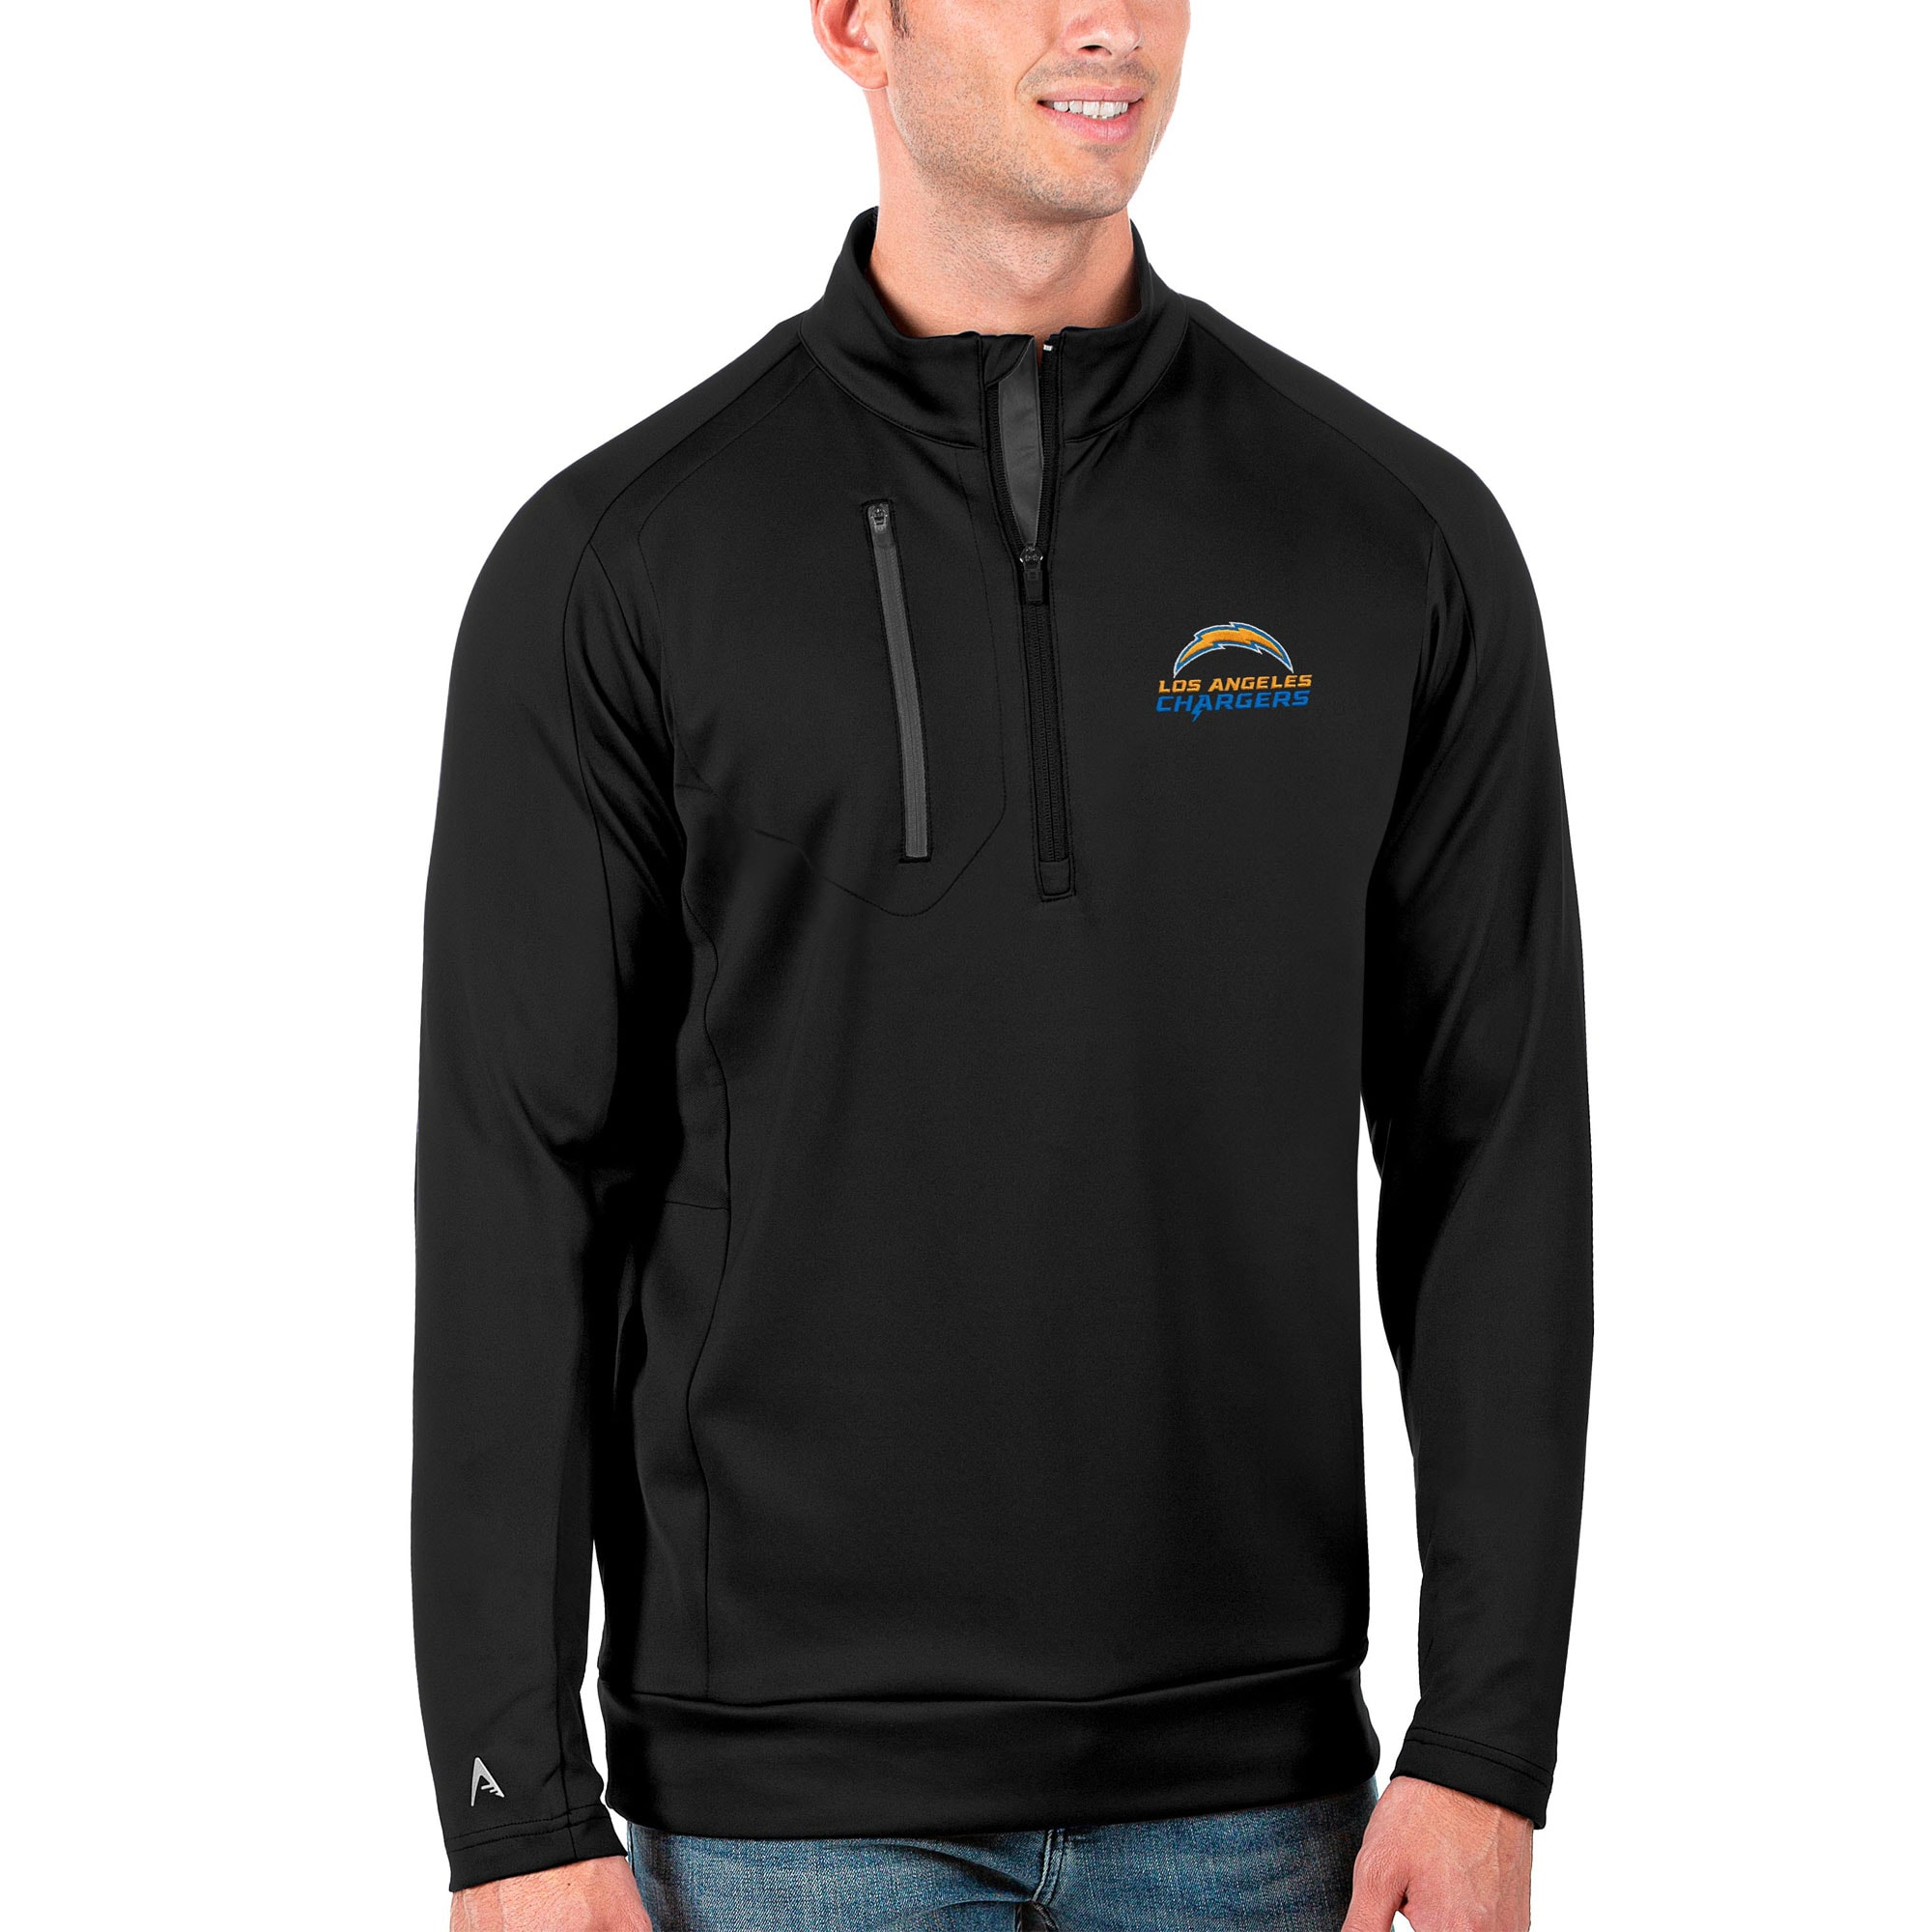 Los Angeles Chargers Antigua Generation Quarter-Zip Pullover Jacket - Black/Charcoal